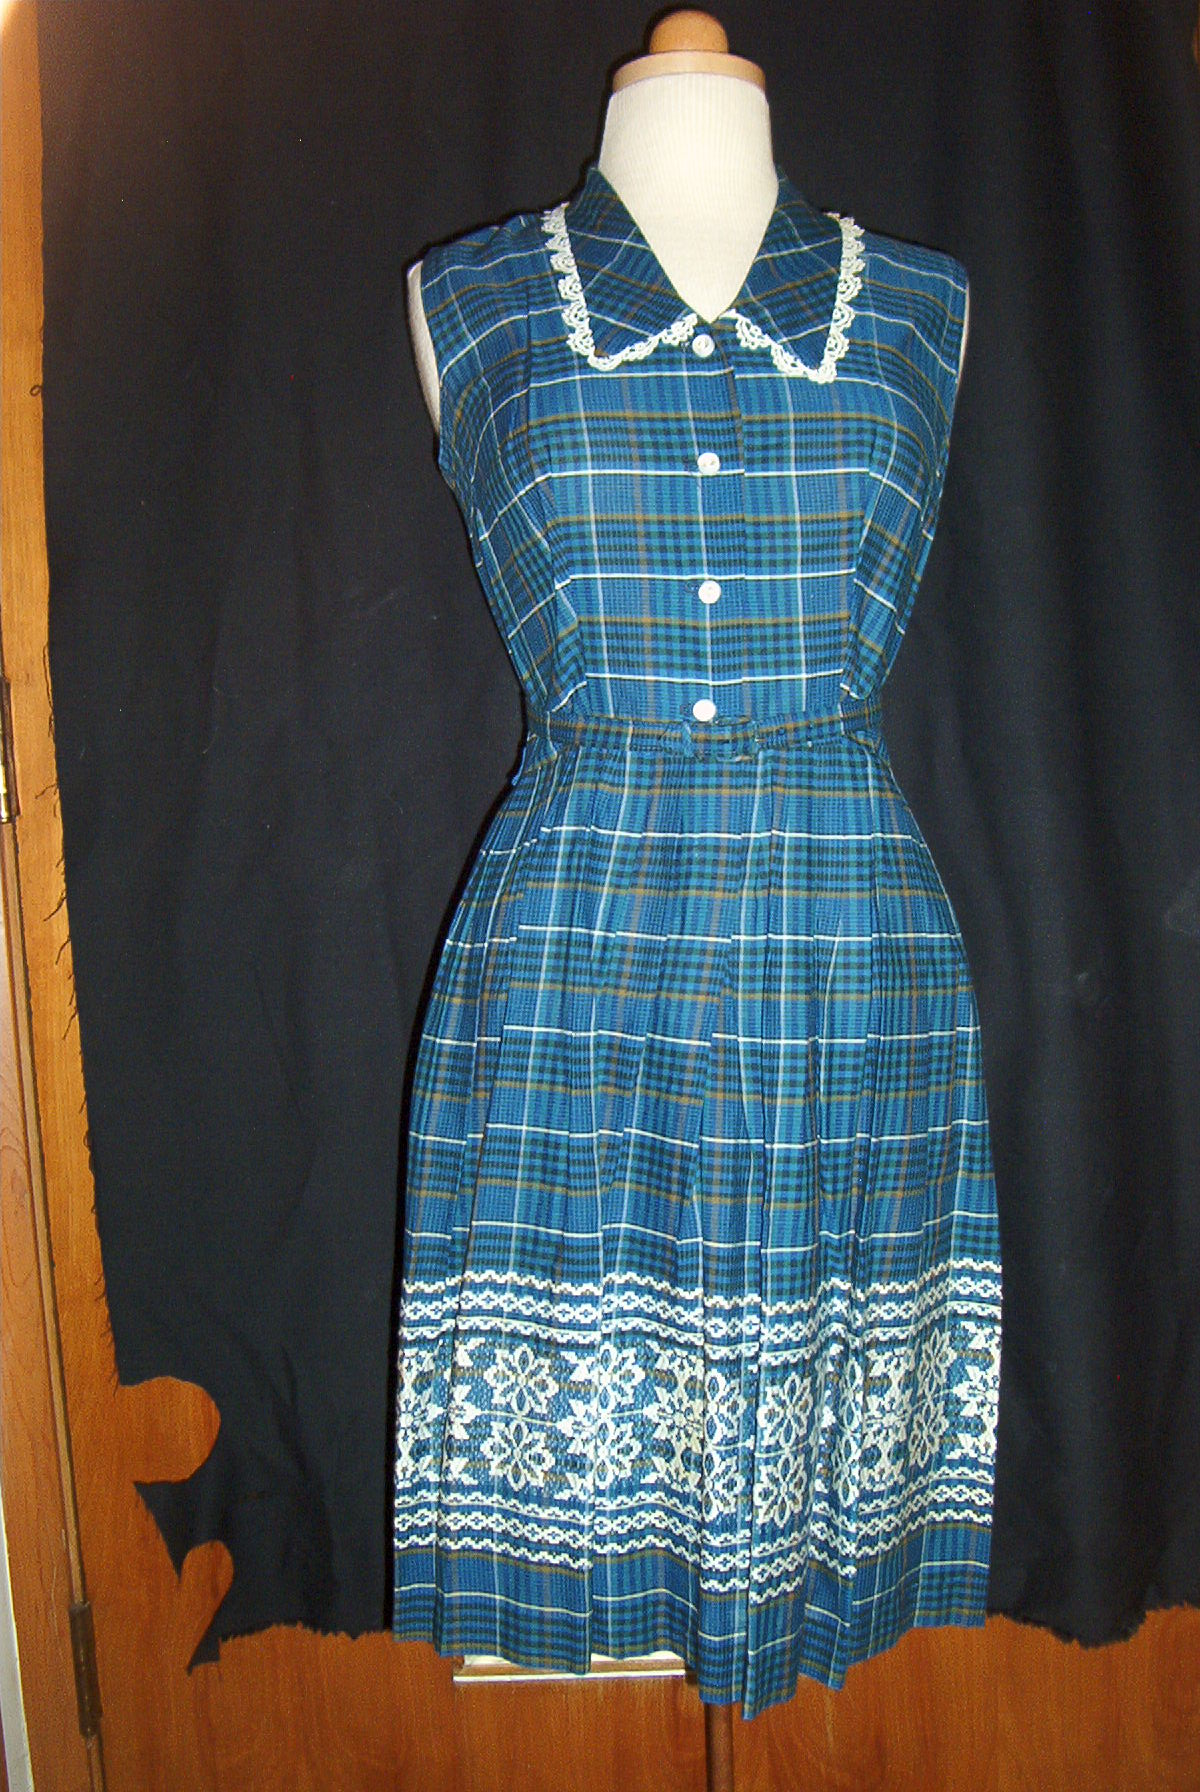 A PRETTY BELTED SHIRTWAIST DRESS FROM THE 1950'S